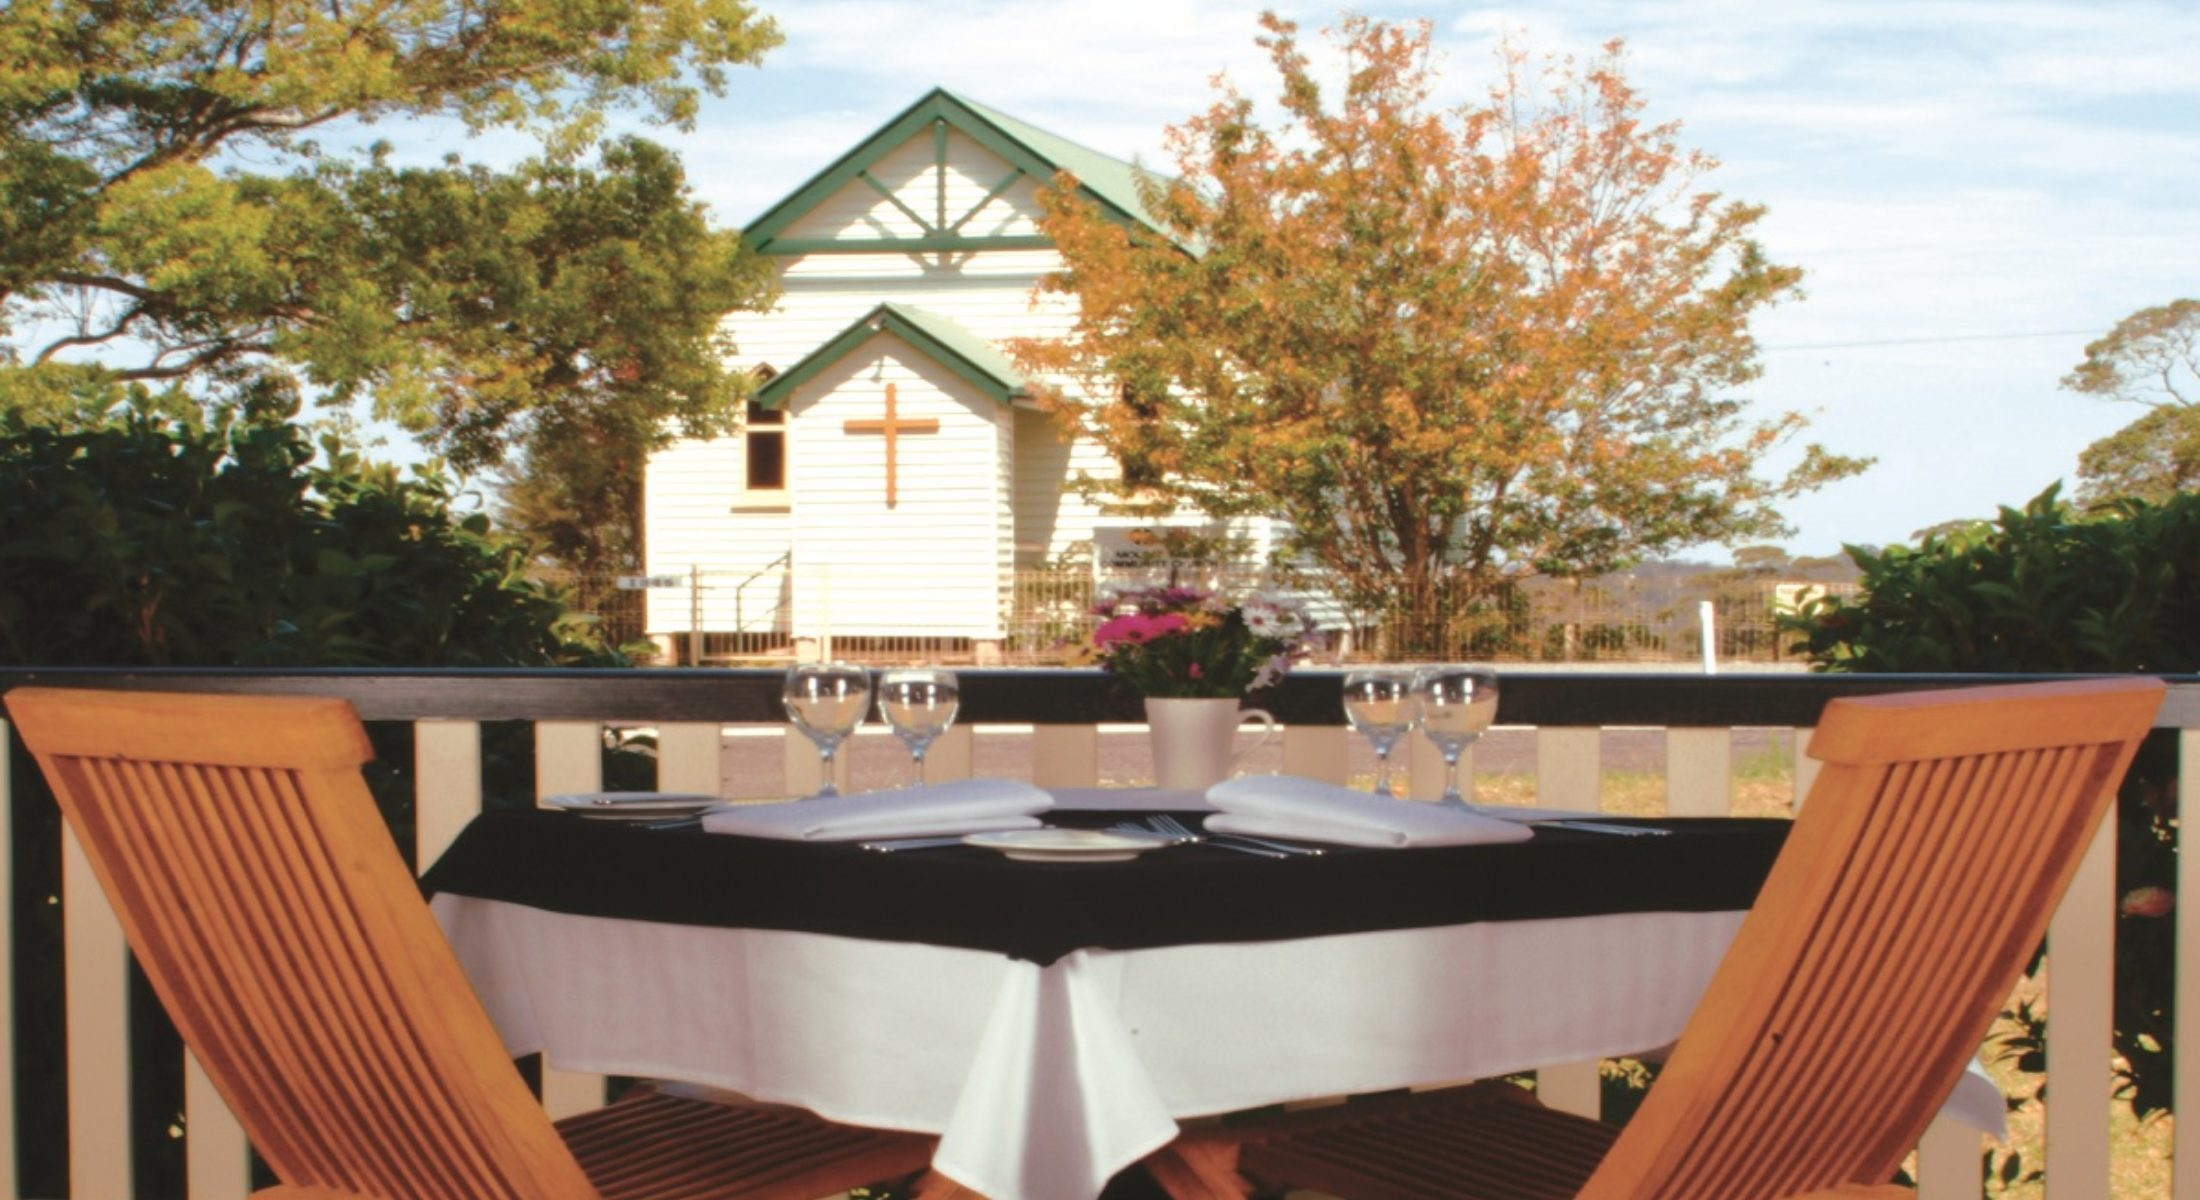 Birches Restaurant Mount Mee Church Wedding And Function Venue Moreton Bay Region